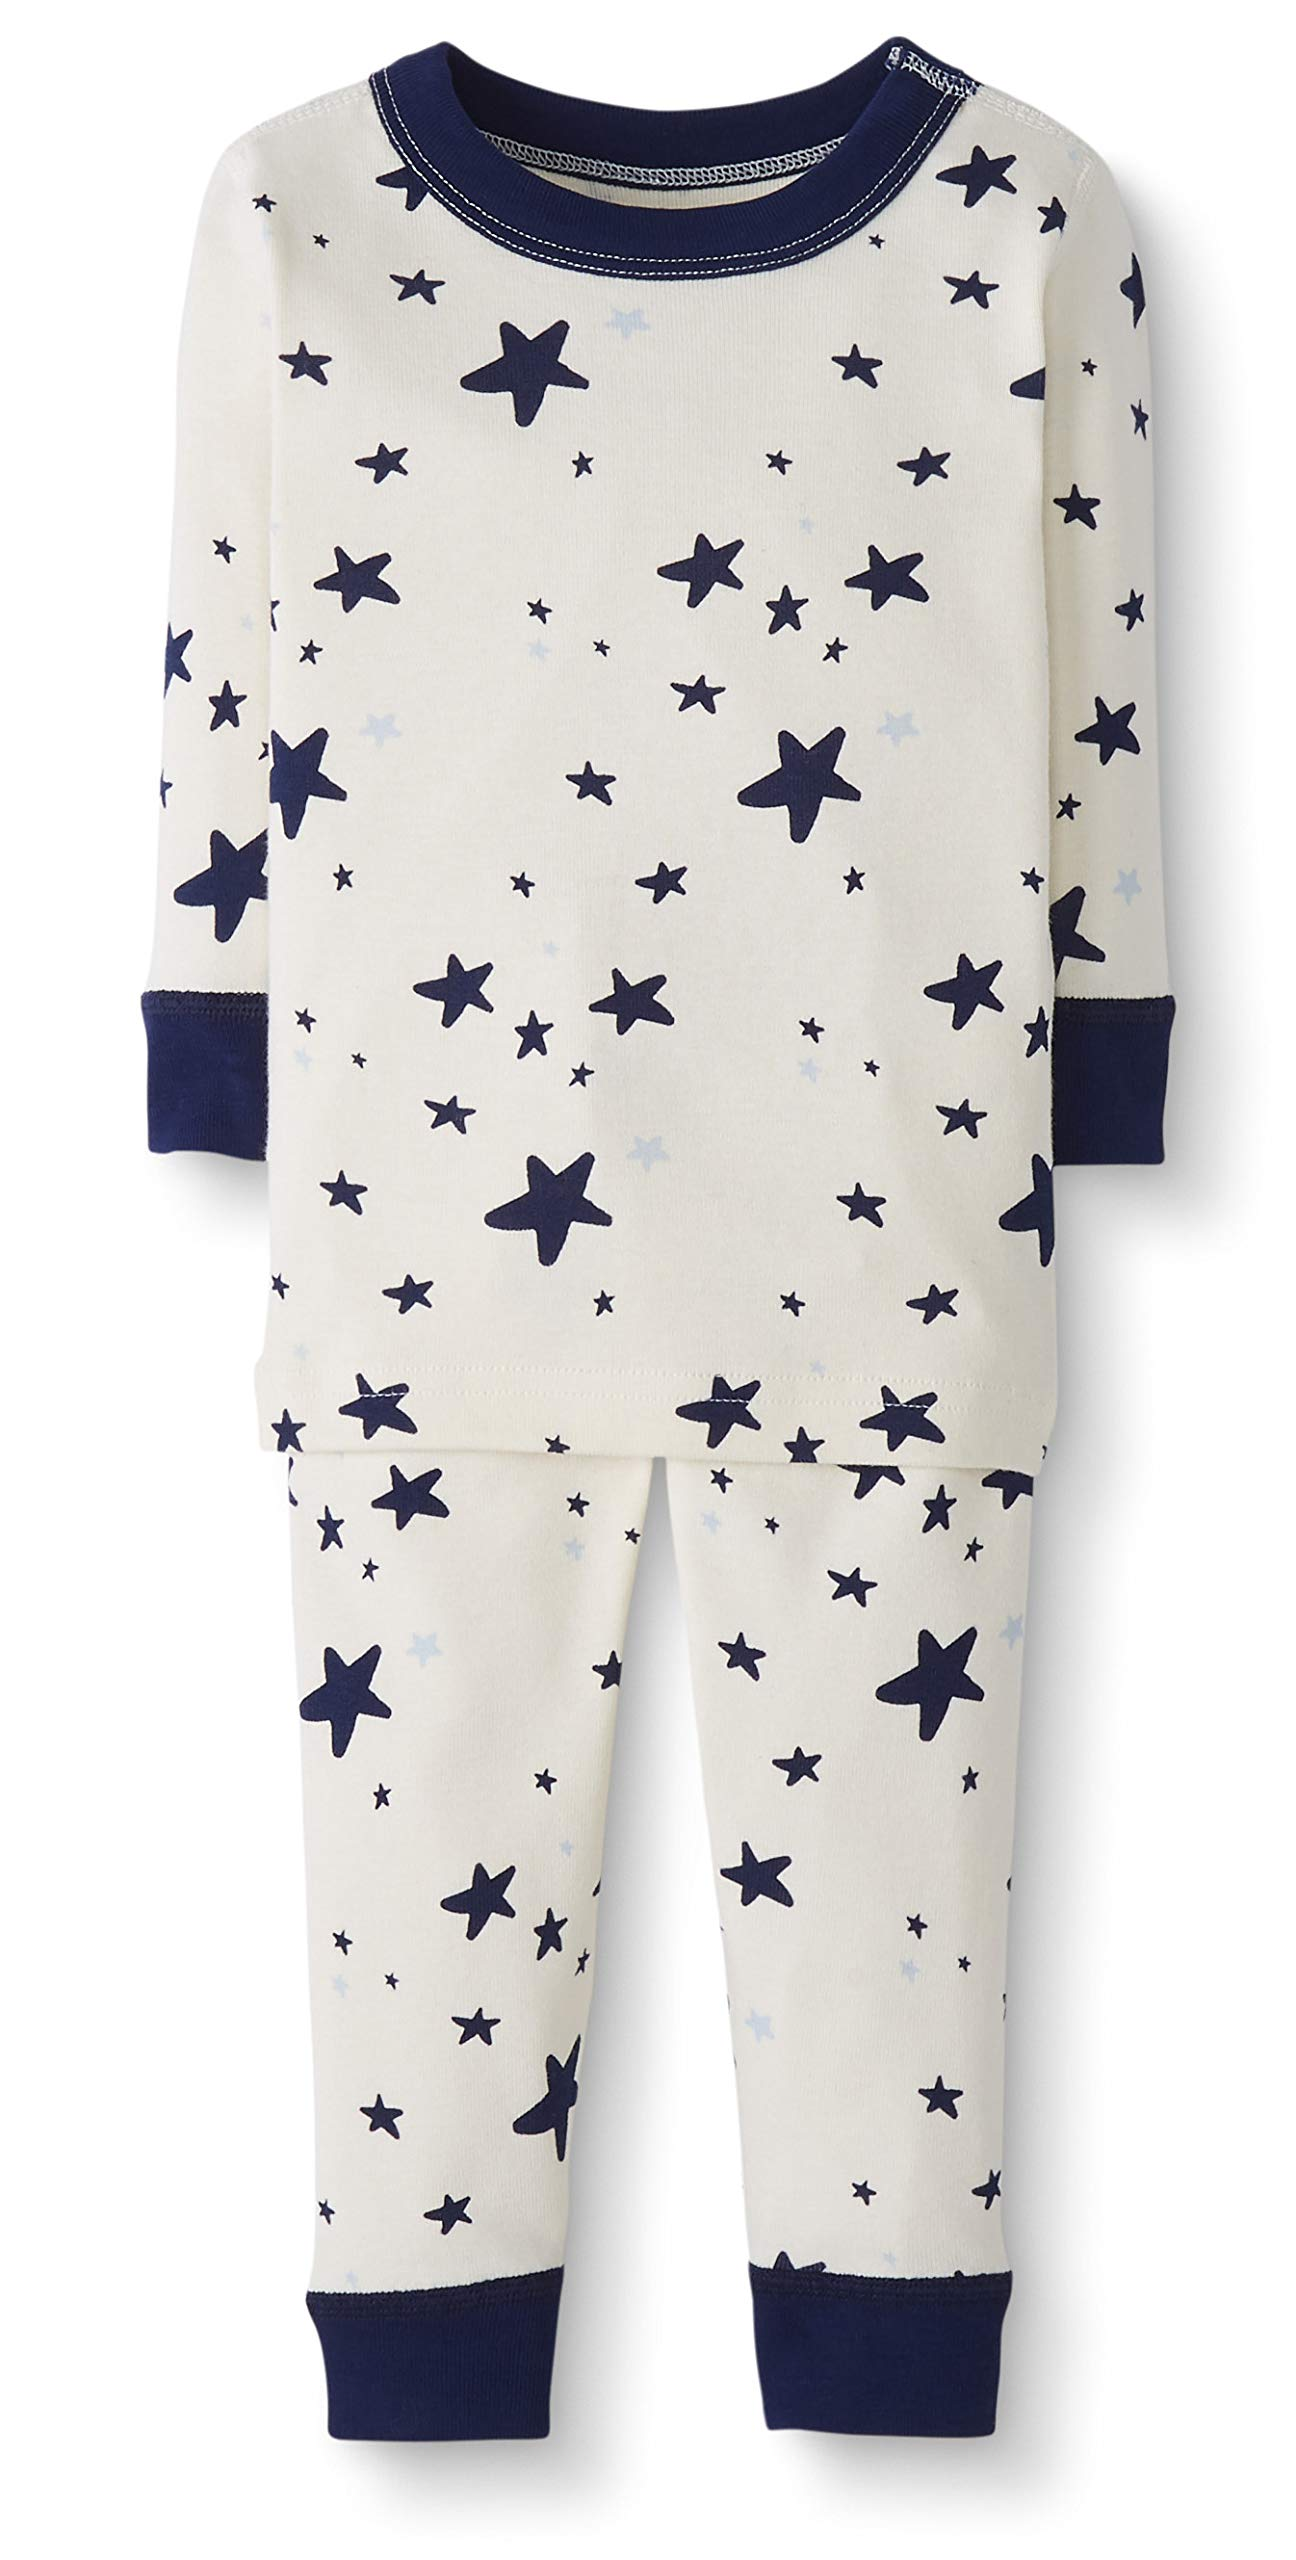 Moon and Back by Hanna Andersson Baby/Toddler 2-Piece Organic Cotton Long Sleeve Star Print Pajama Set, Navy, 3T by Moon and Back by Hanna Andersson